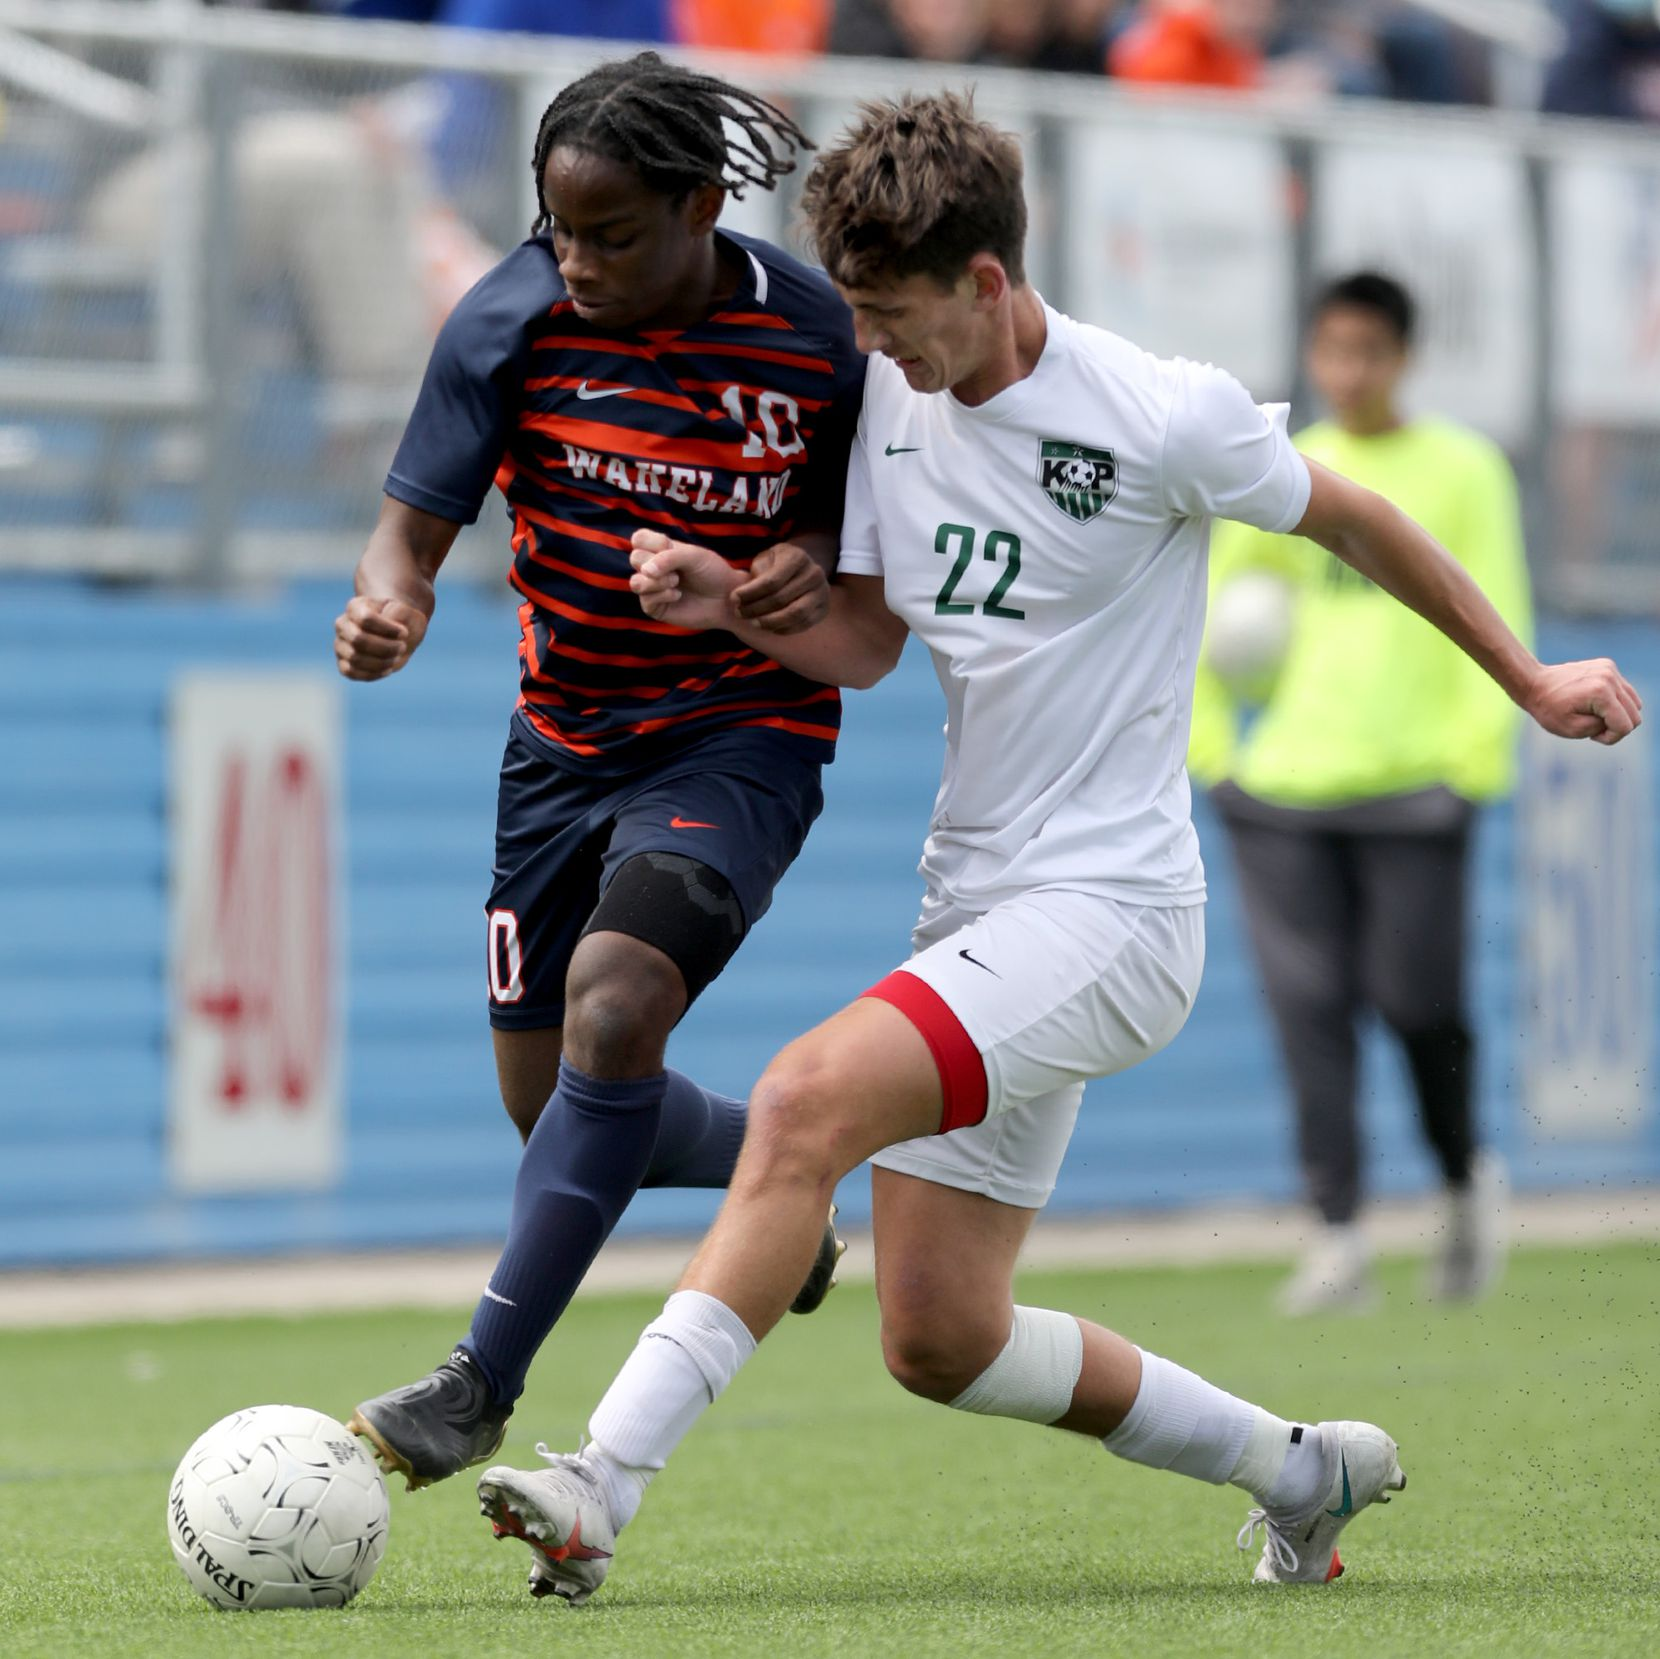 Frisco Wakeland's Marlon Williams (10) and Humble Kingwood Park's Tony Sterner (22) struggle for control of the ball during their UIL 5A boys State championship soccer game at Birkelbach Field on April 17, 2021 in Georgetown, Texas.